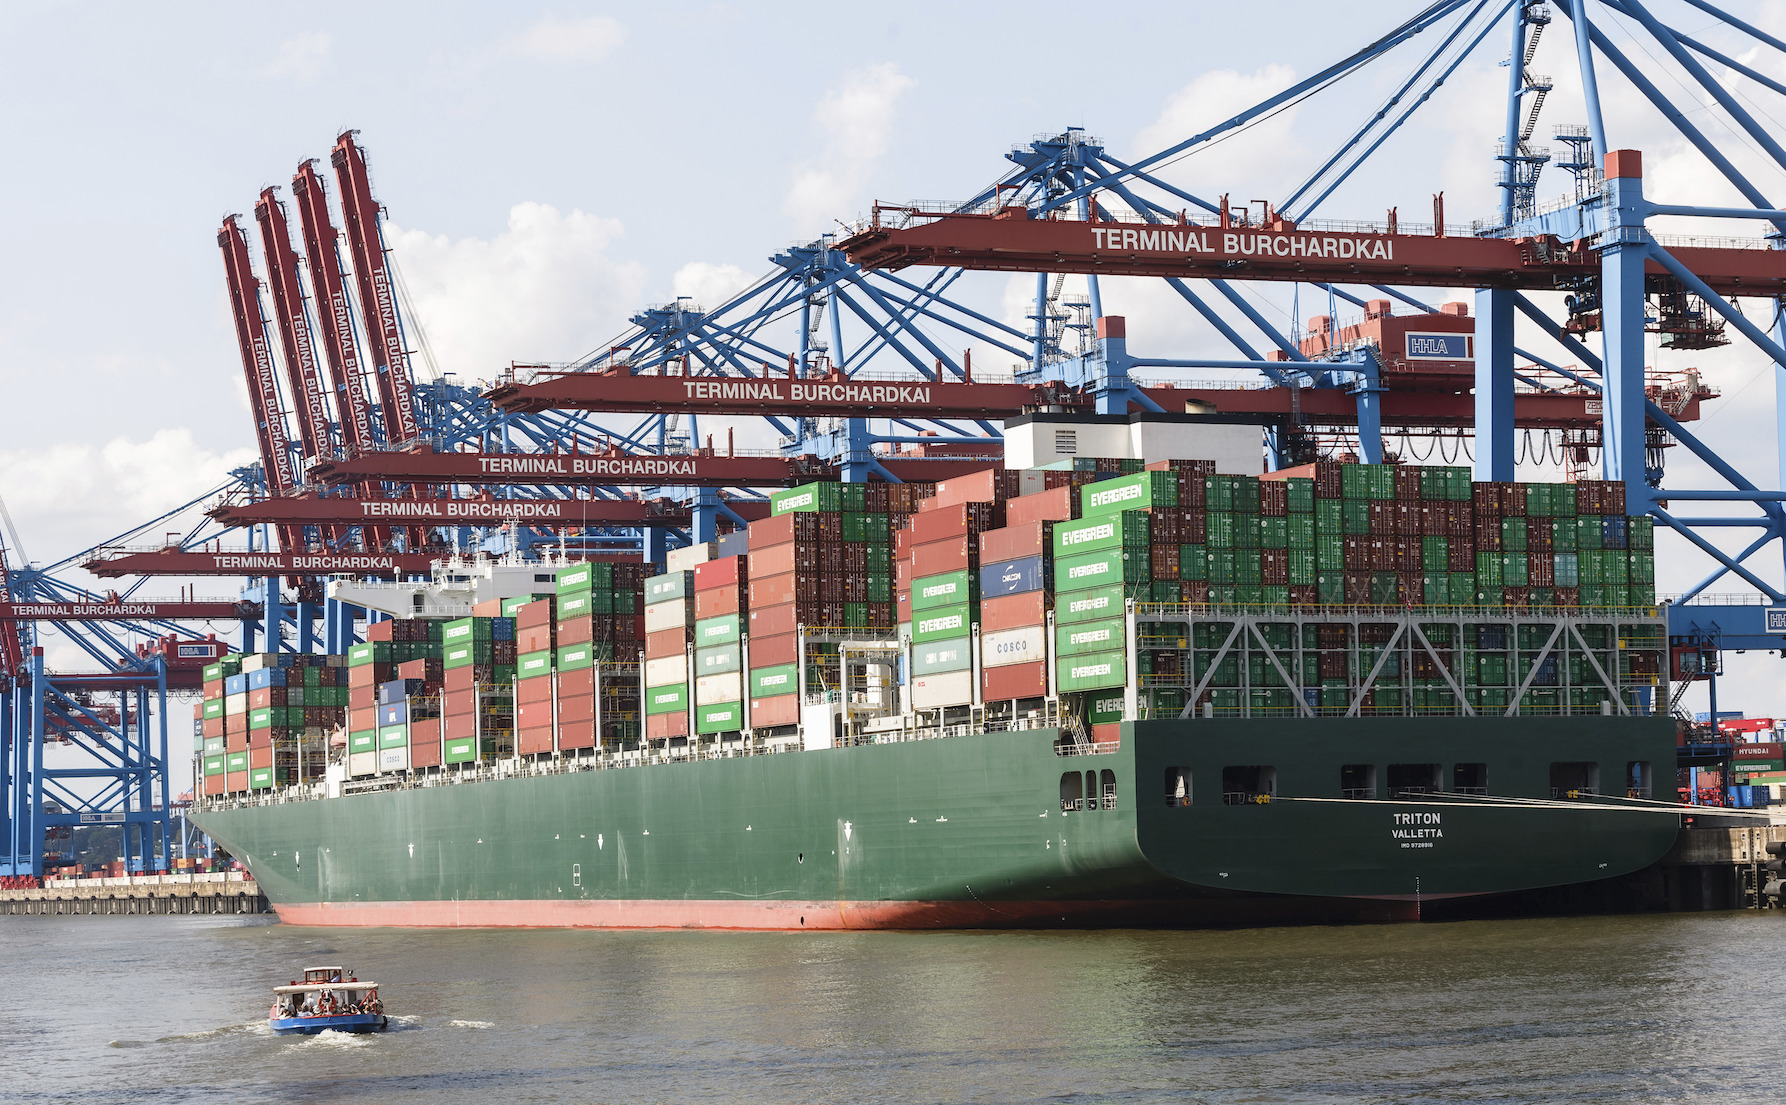 12 August 2021, Port of Hamburg: A container ship is moored at Burchardkai.